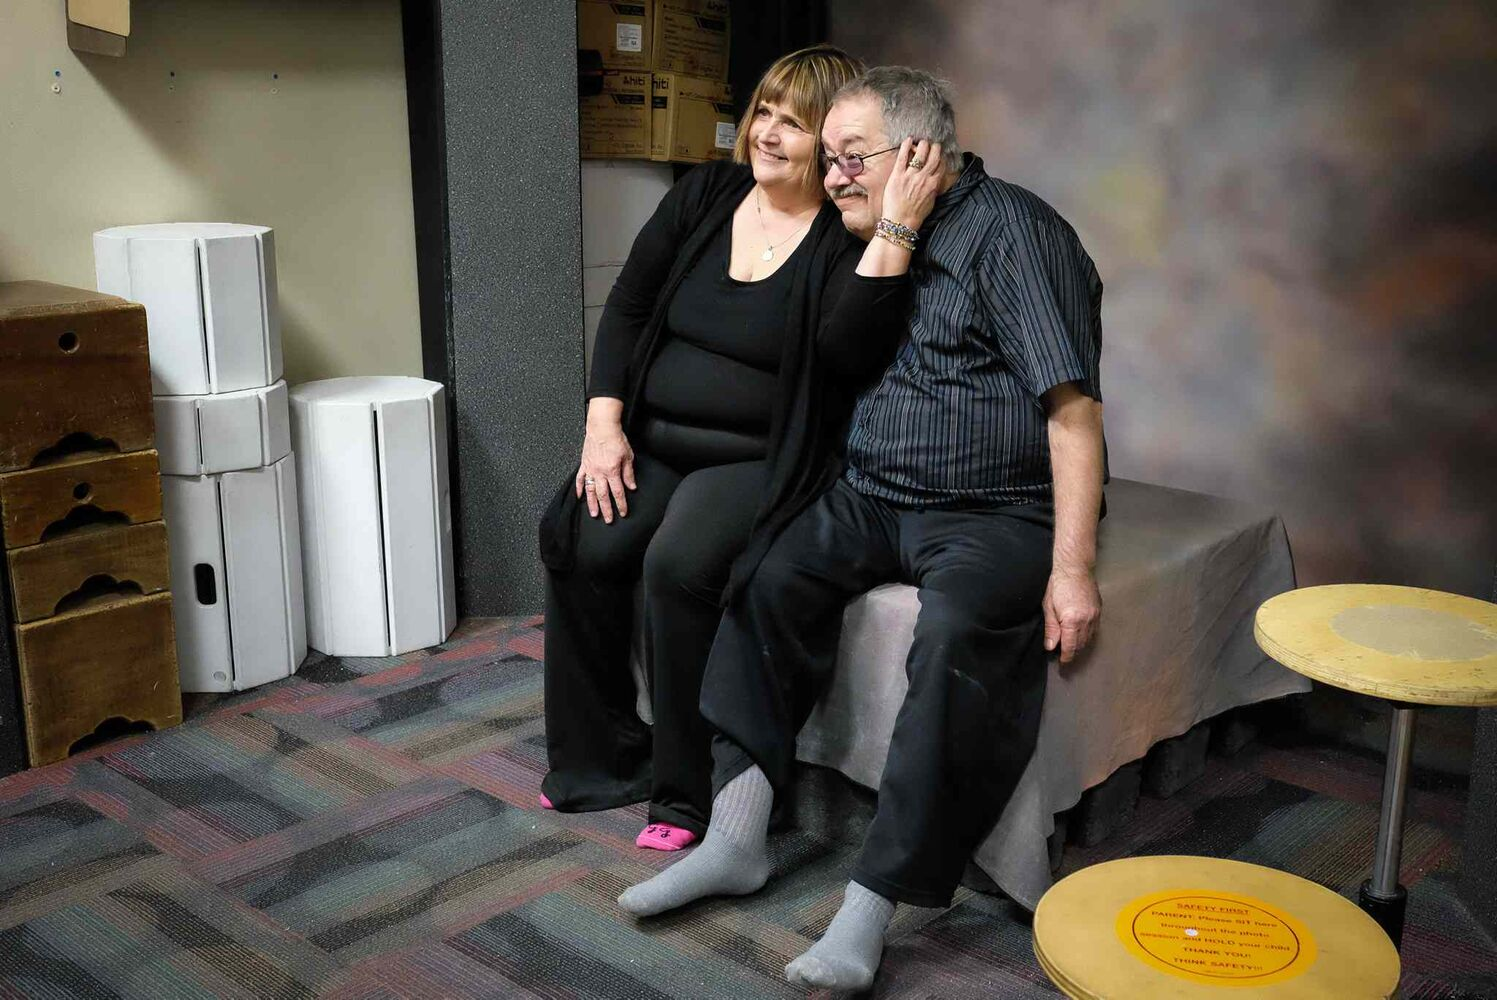 """One of the activities that Cathy planned for their """"Love Day Outing,"""" was to get a new portrait taken at a local studio. MIKE DEAL / WINNIPEG FREE PRESS"""